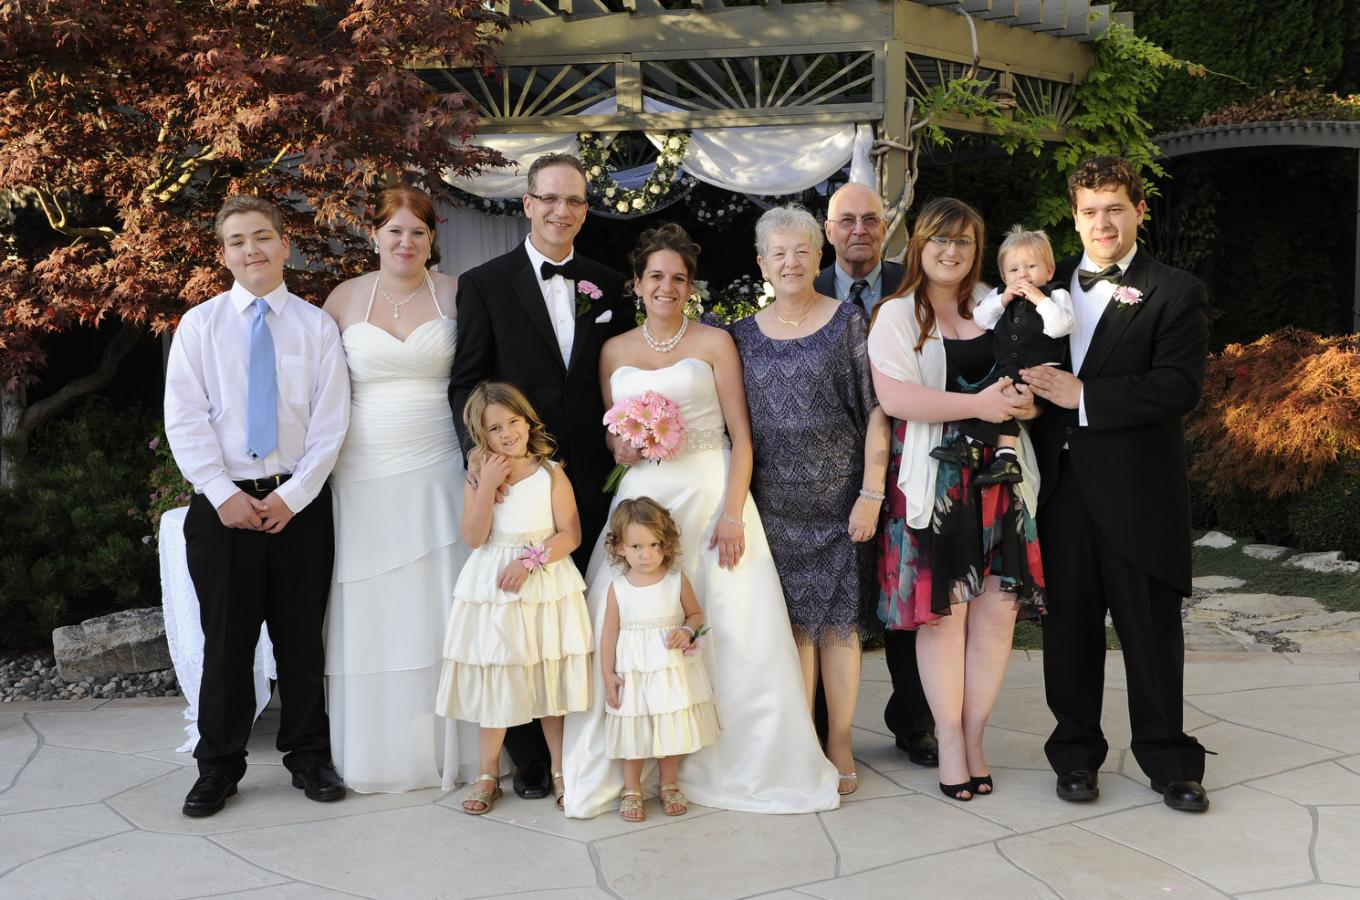 Intimate Family Wedding Ceremonies